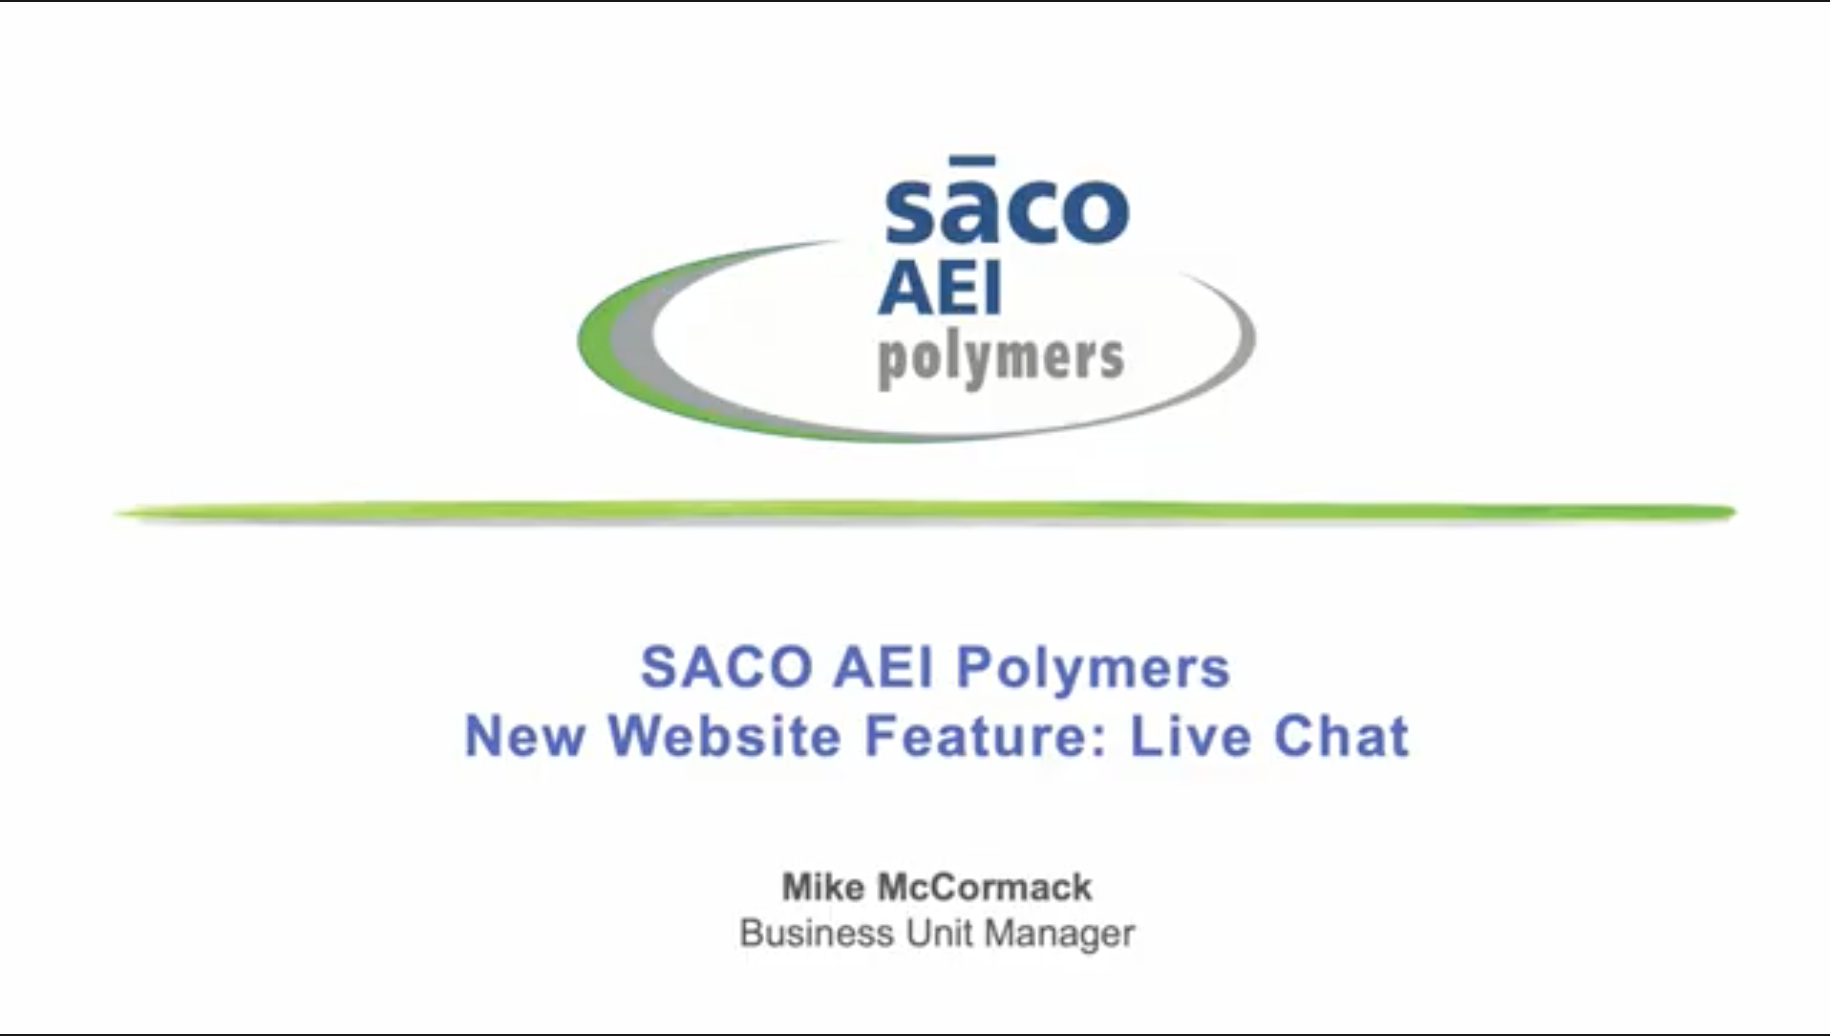 New Website Feature: Live Chat